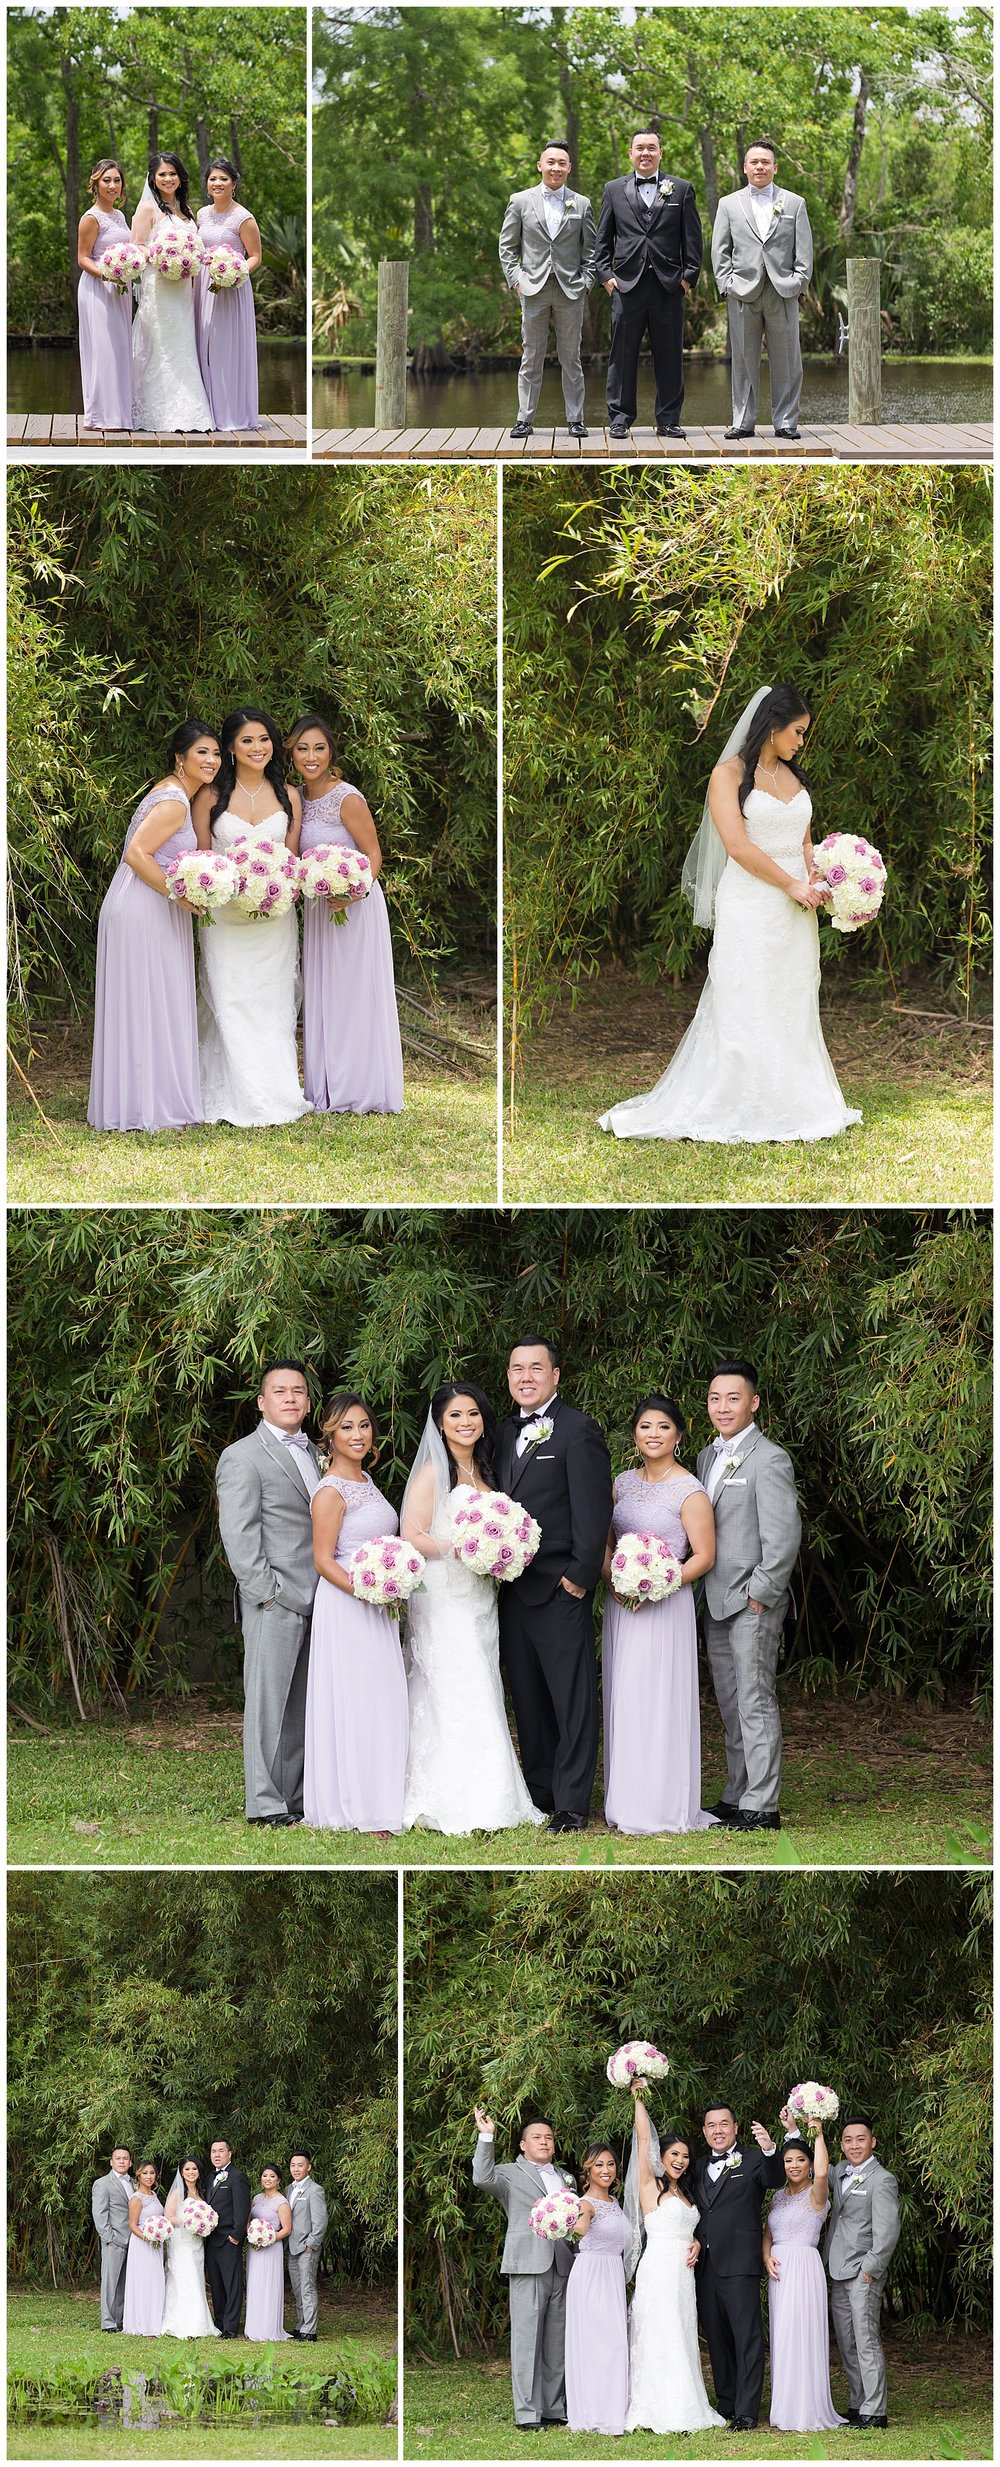 New Orleans wedding party photos by Uninvented Colors Photography